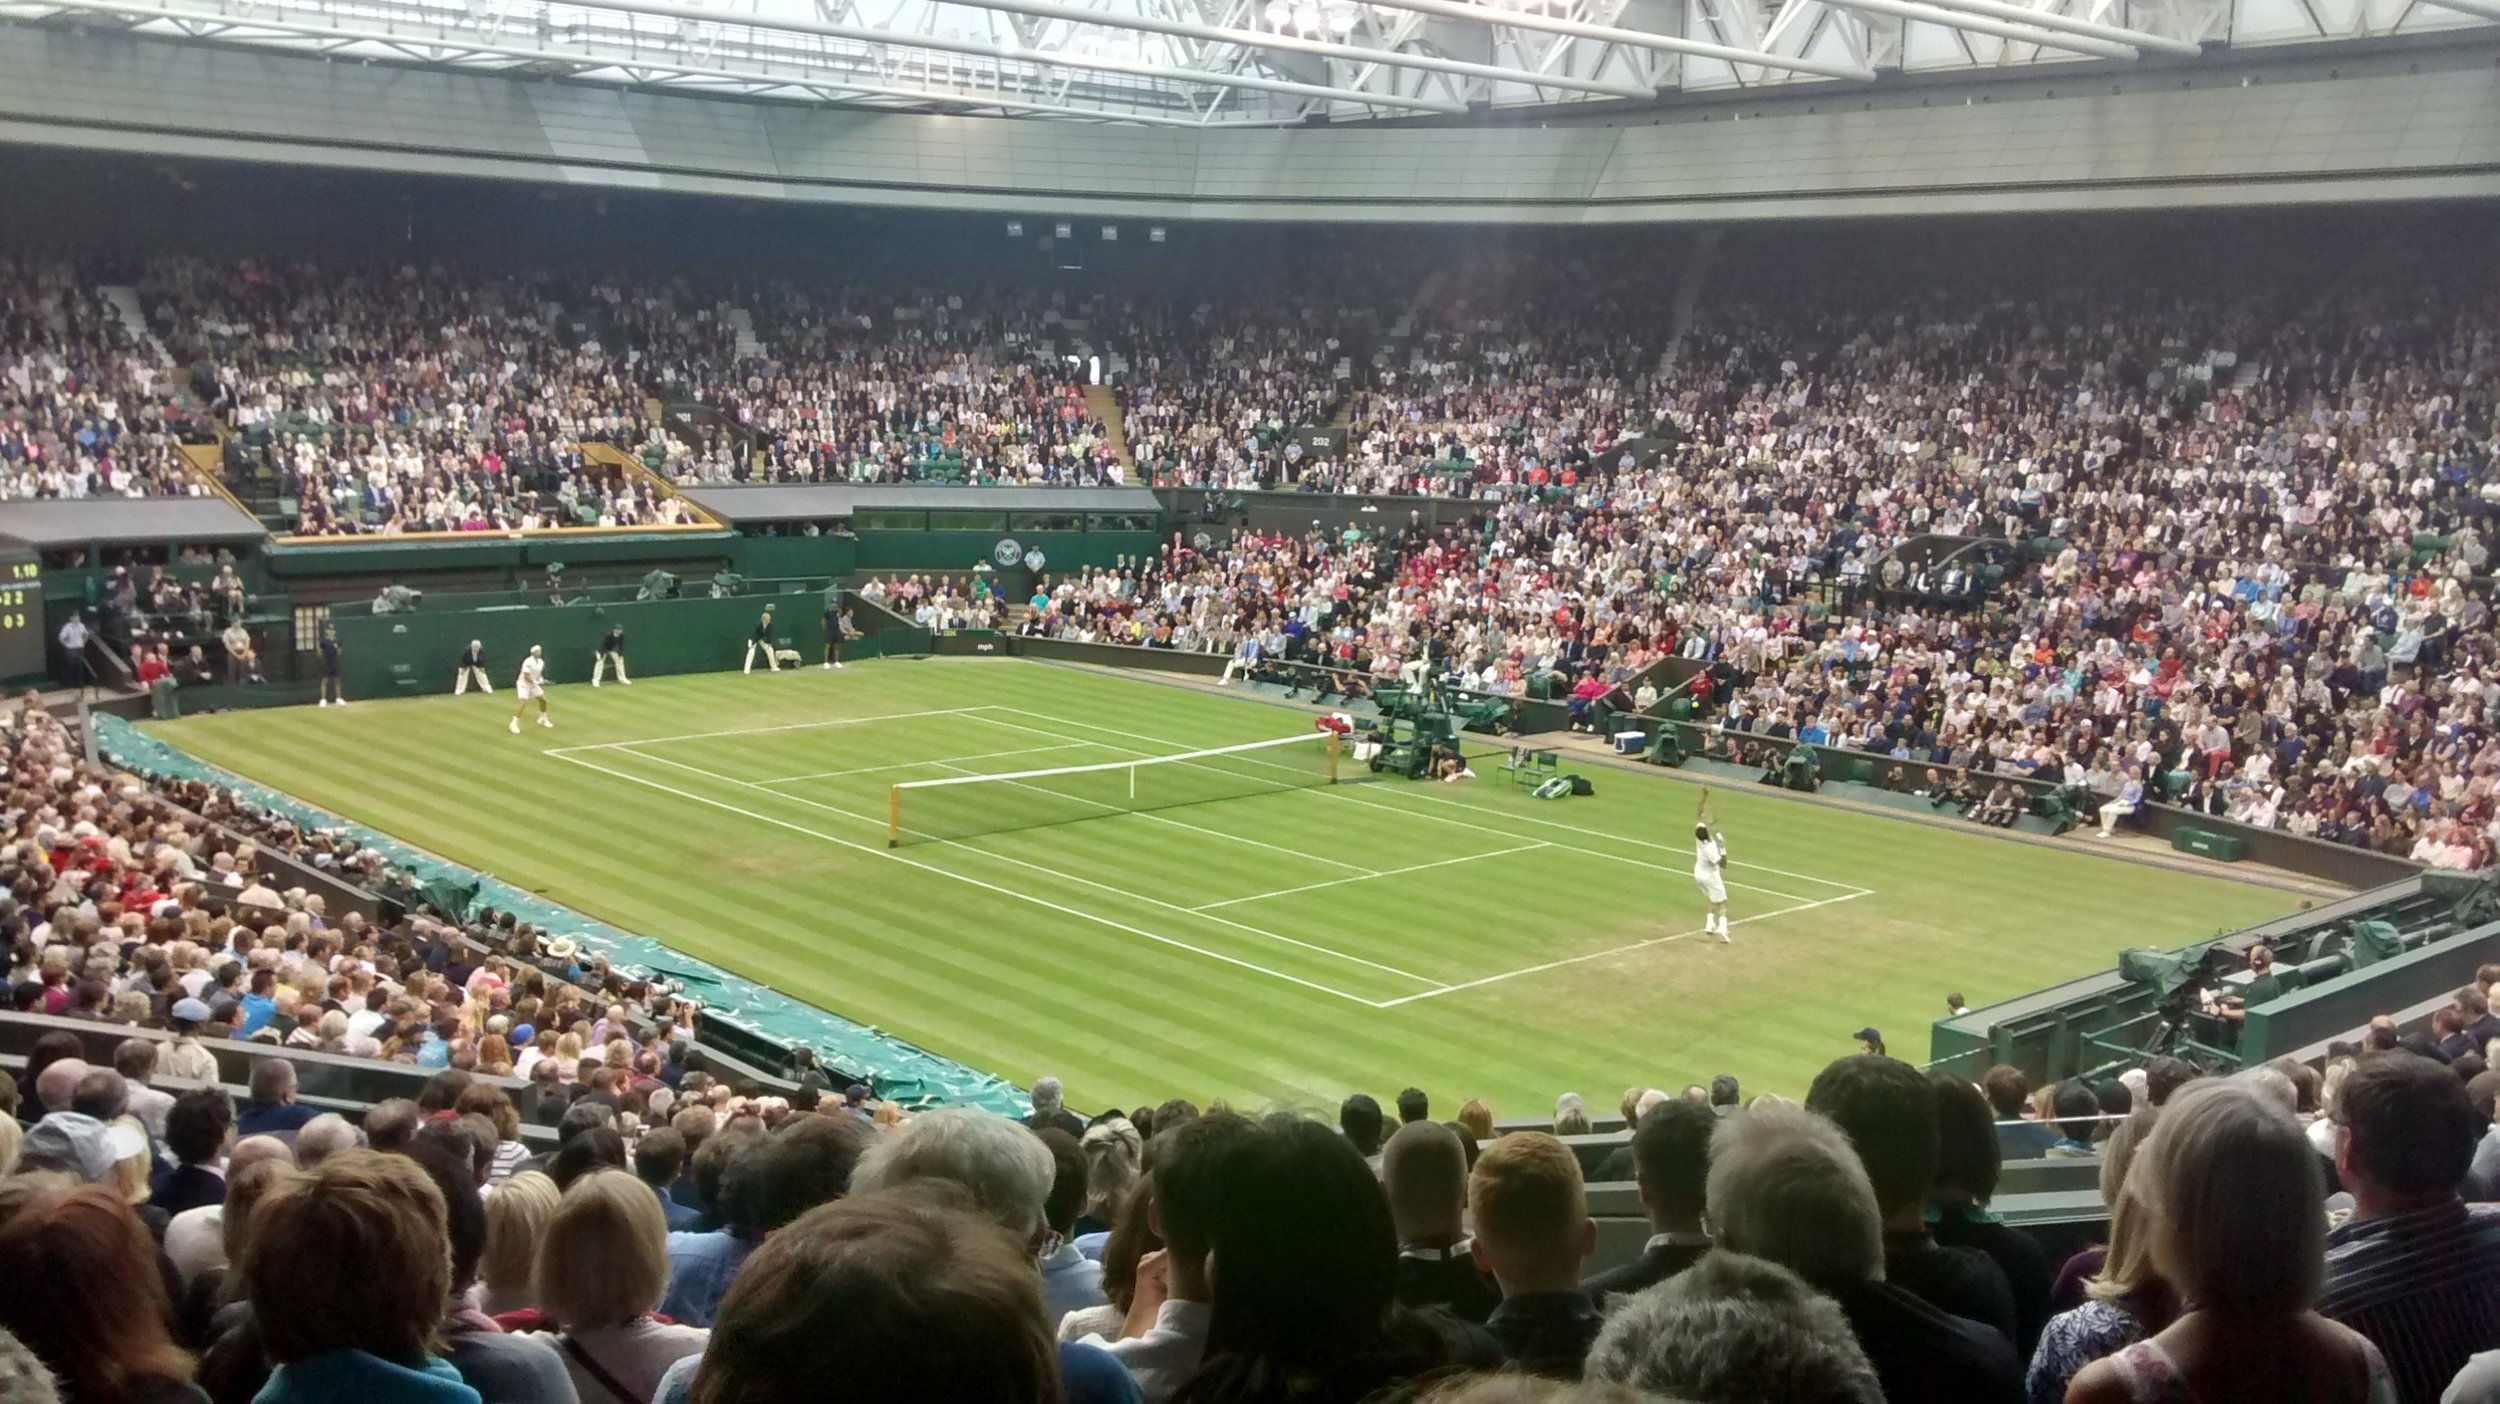 Resale tickets to see Roger Federer on Centre Court two year's ago!